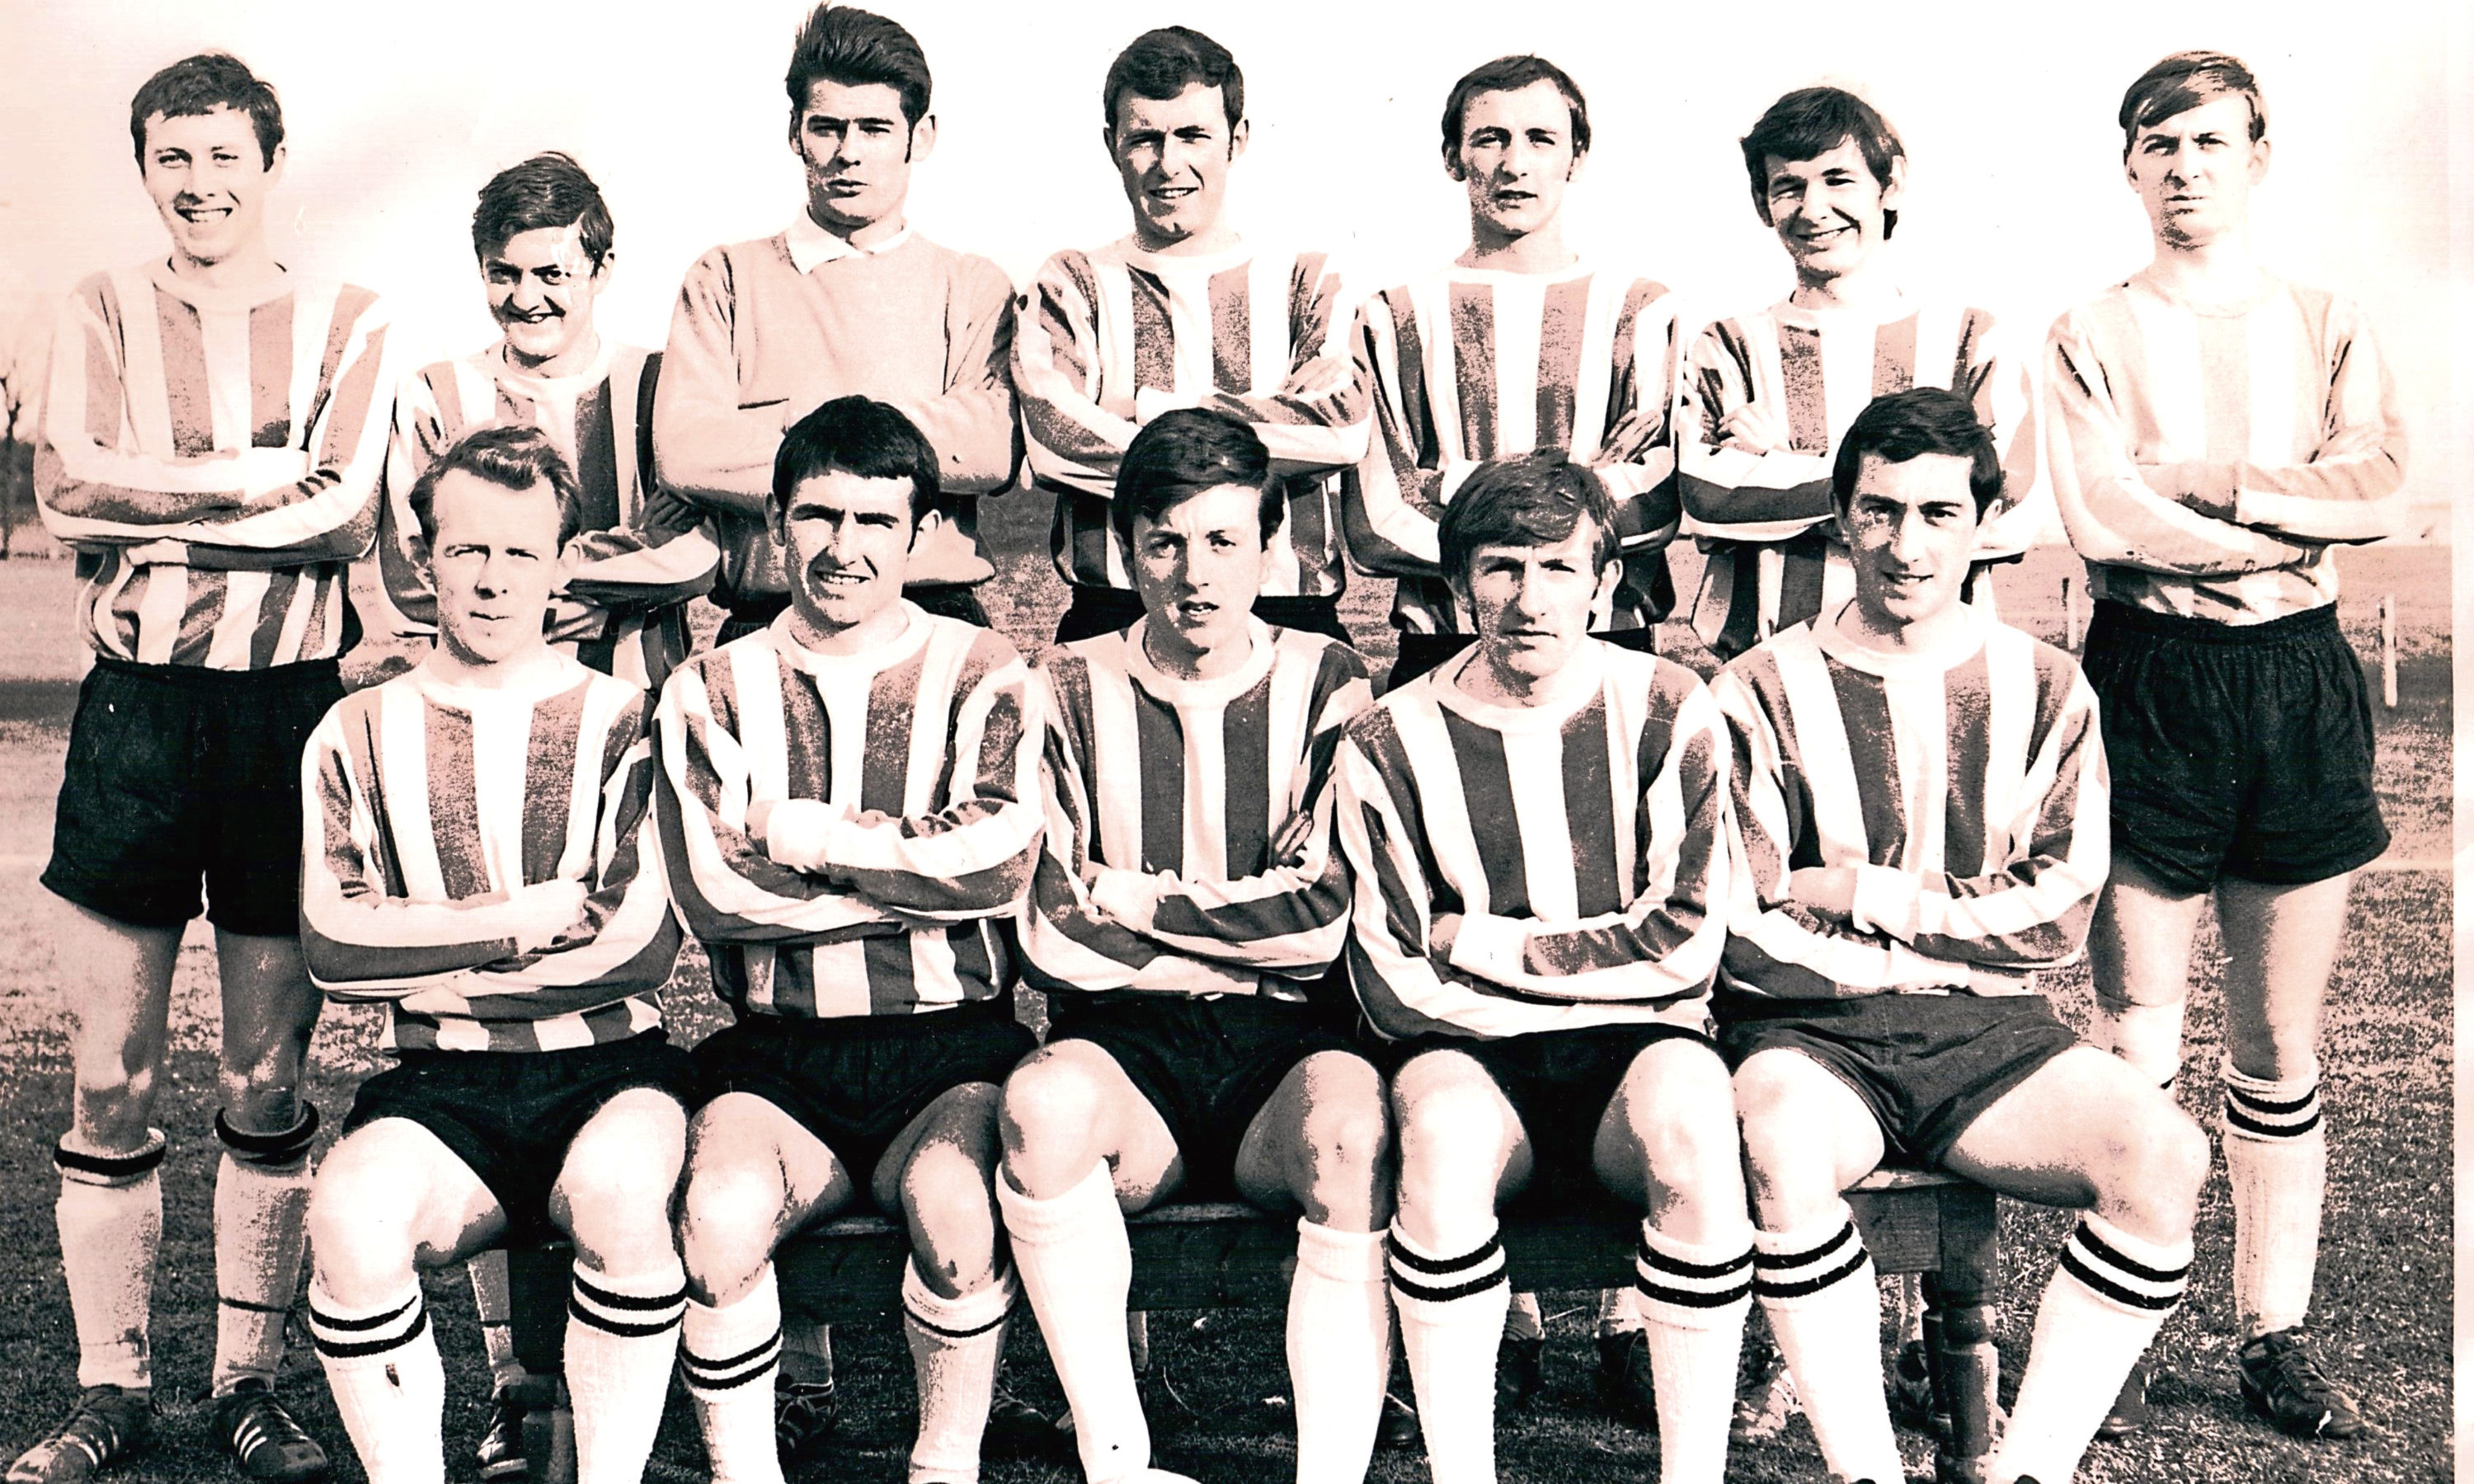 Ally is the keeper in this 1969-70 Broughty United team that won the double of League and North of Tay Cup.